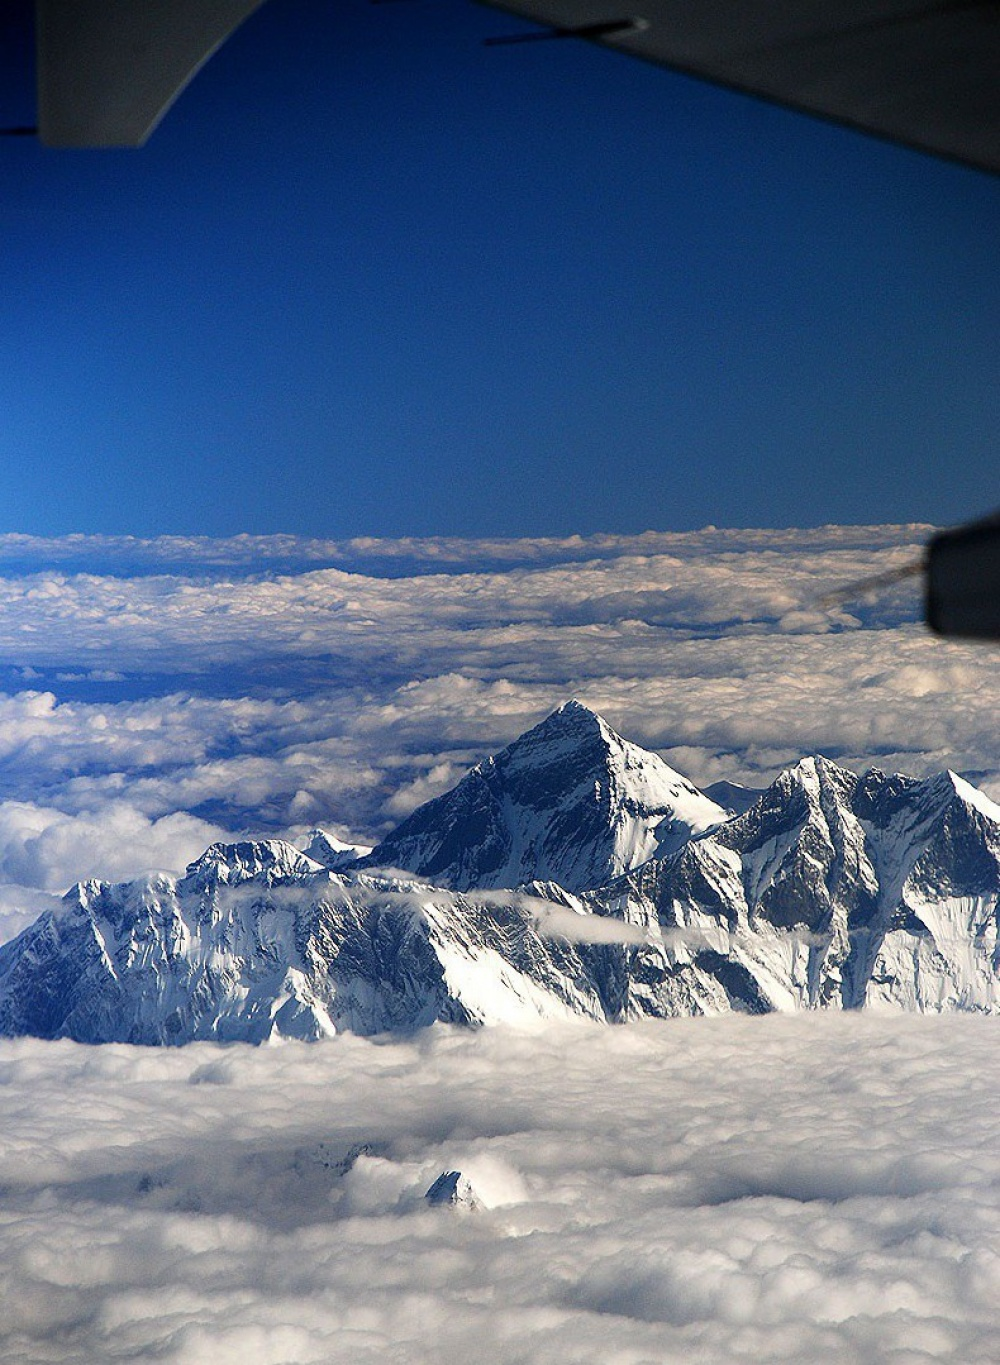 a-view-of-mount-everest-from-a-plane